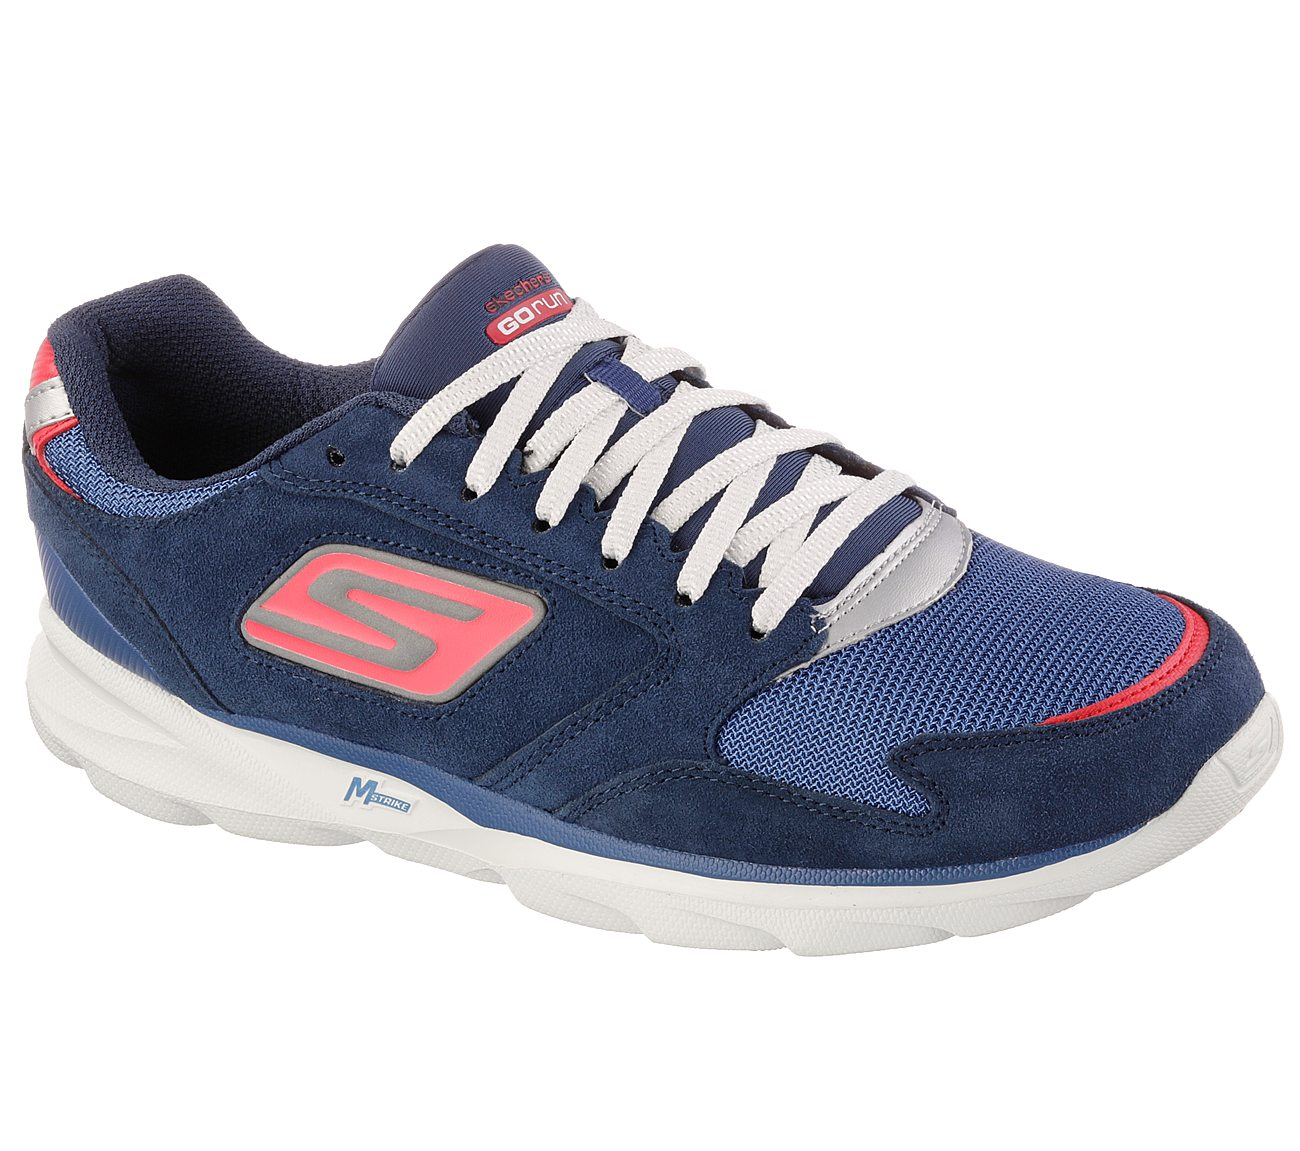 skechers counterpart review Sale,up to